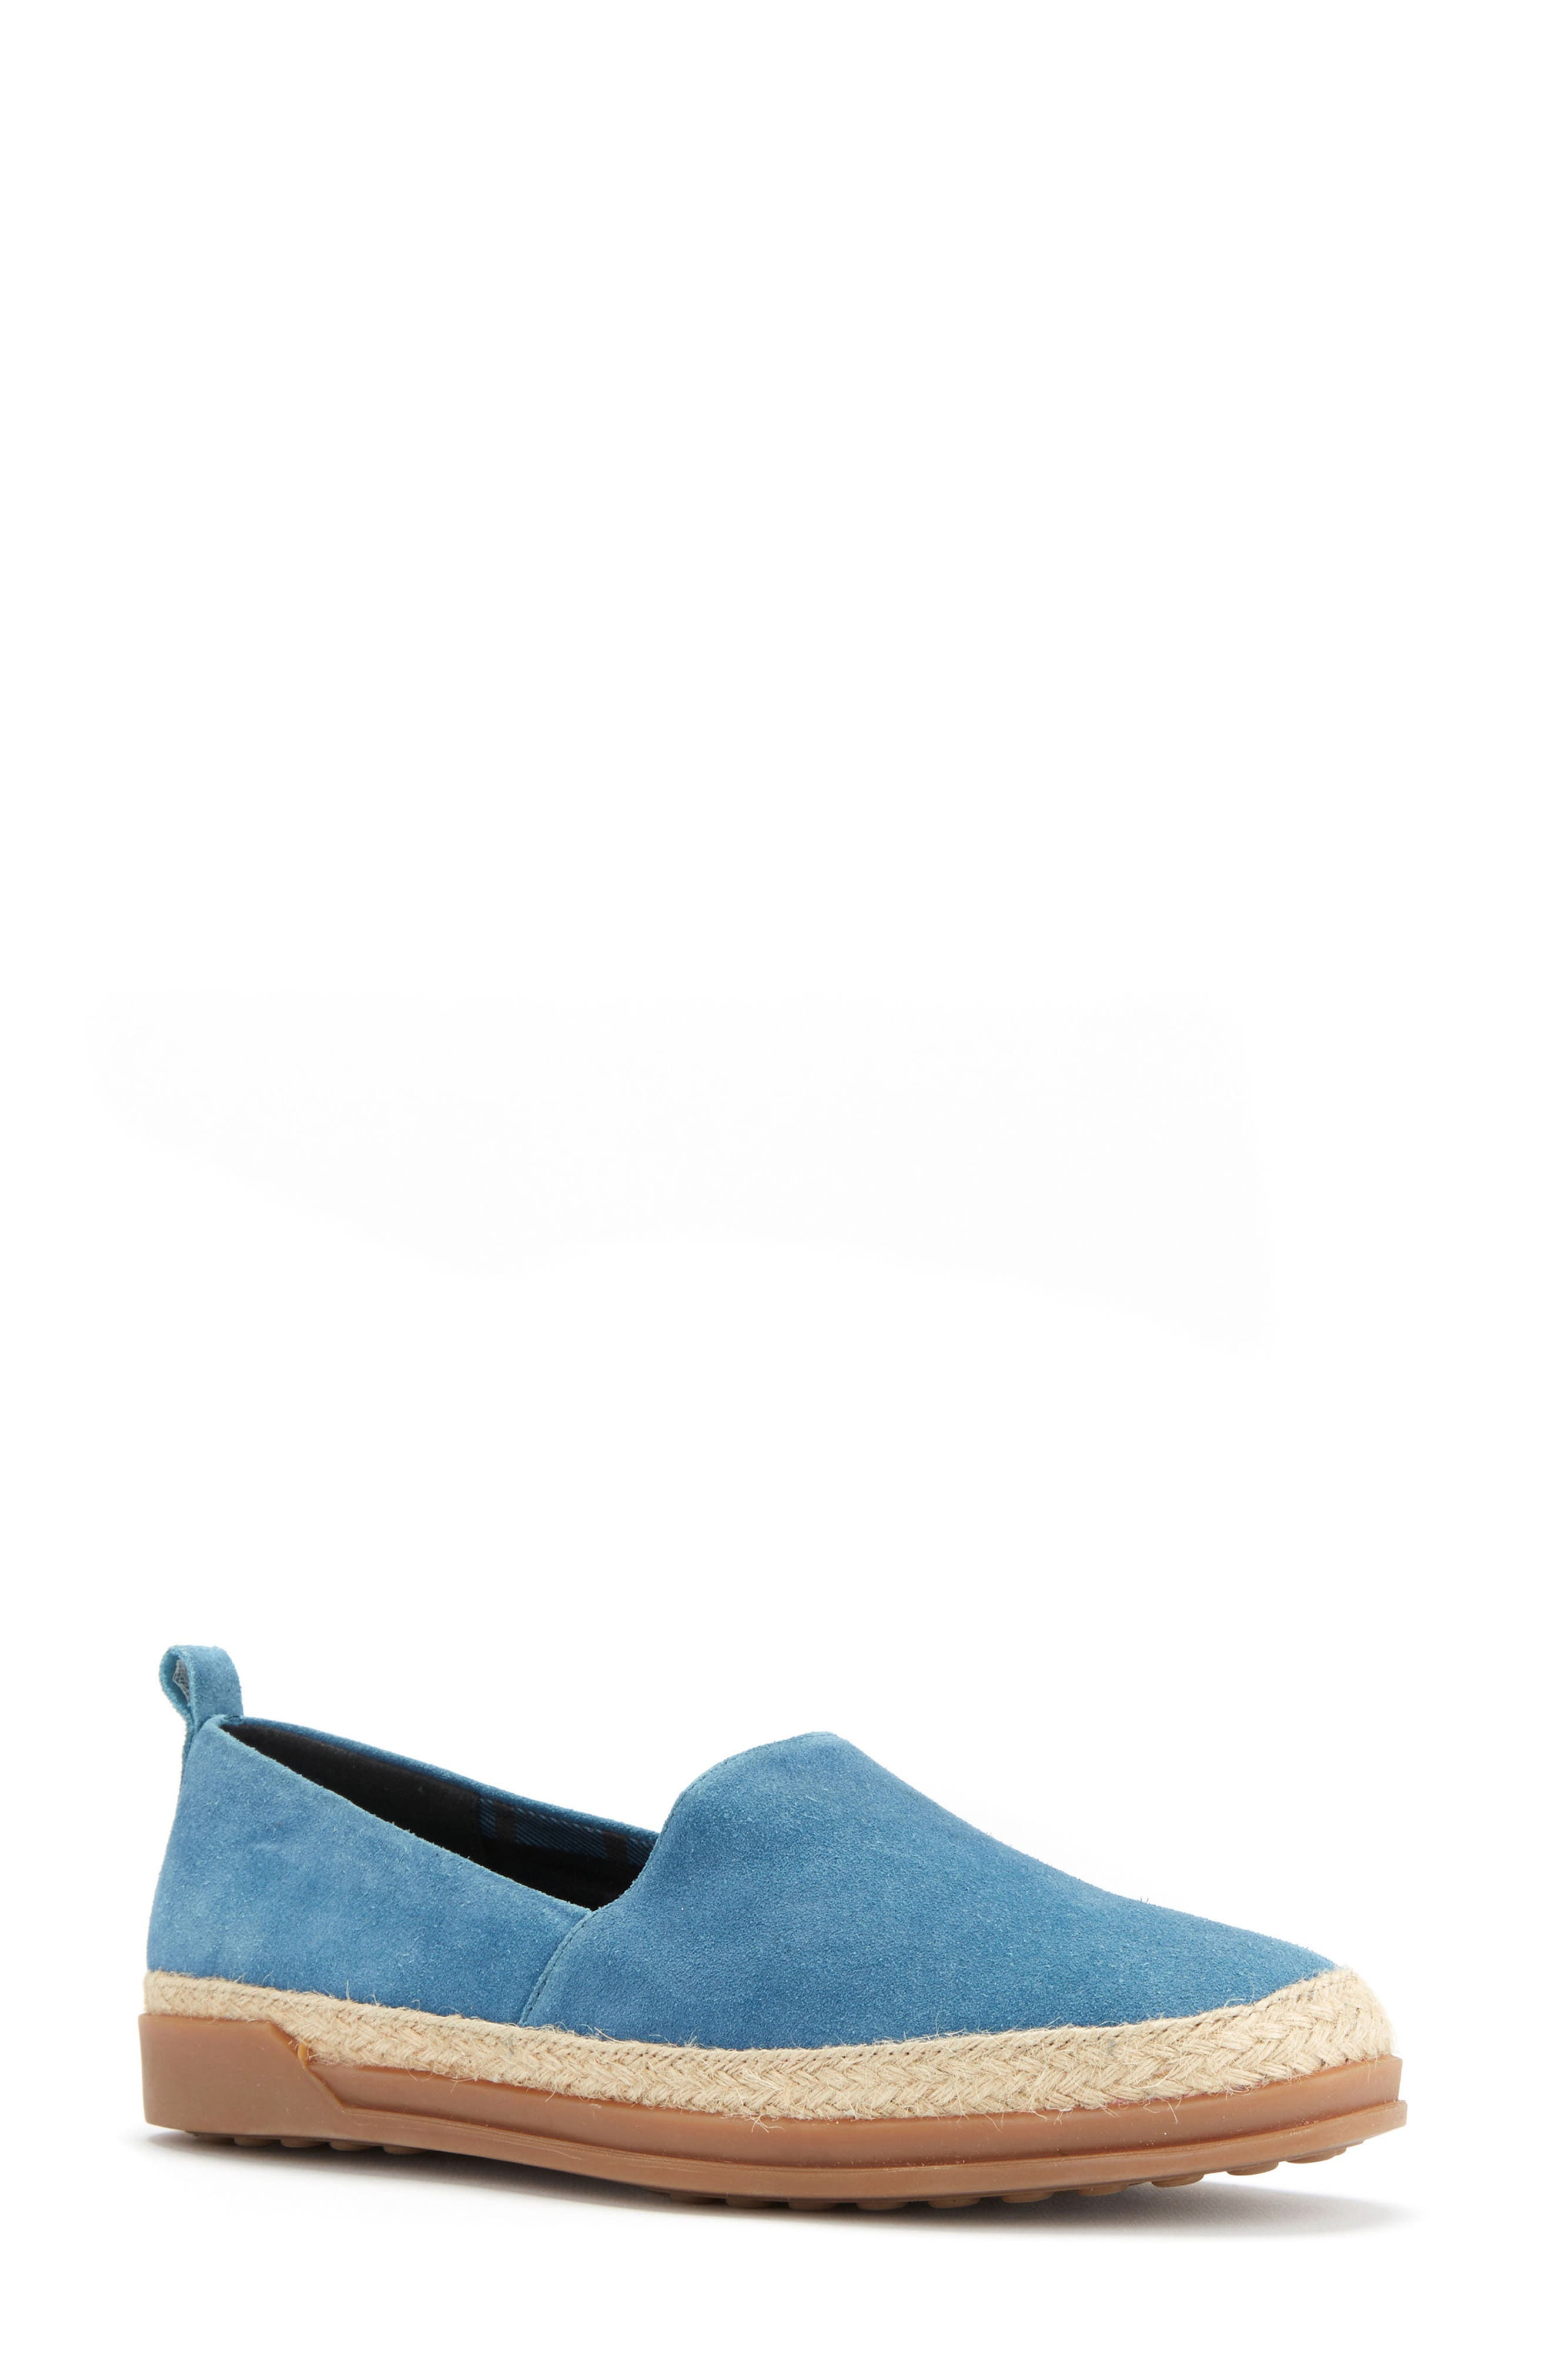 Bailey Espadrille Flat,                             Main thumbnail 1, color,                             Blue Suede